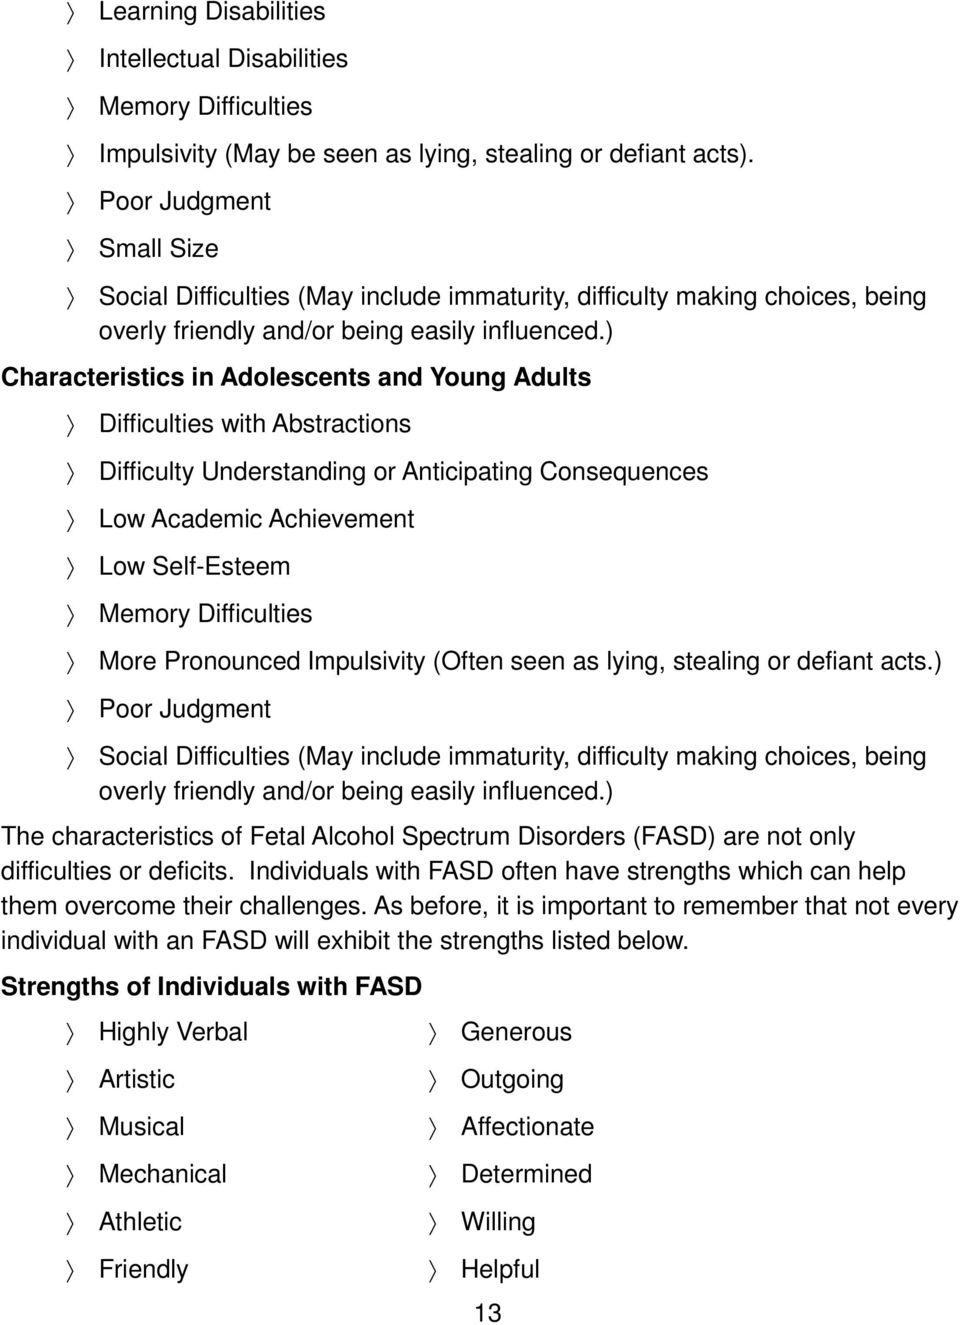 ) Characteristics in Adolescents and Young Adults Difficulties with Abstractions Difficulty Understanding or Anticipating Consequences Low Academic Achievement Low Self-Esteem Memory Difficulties